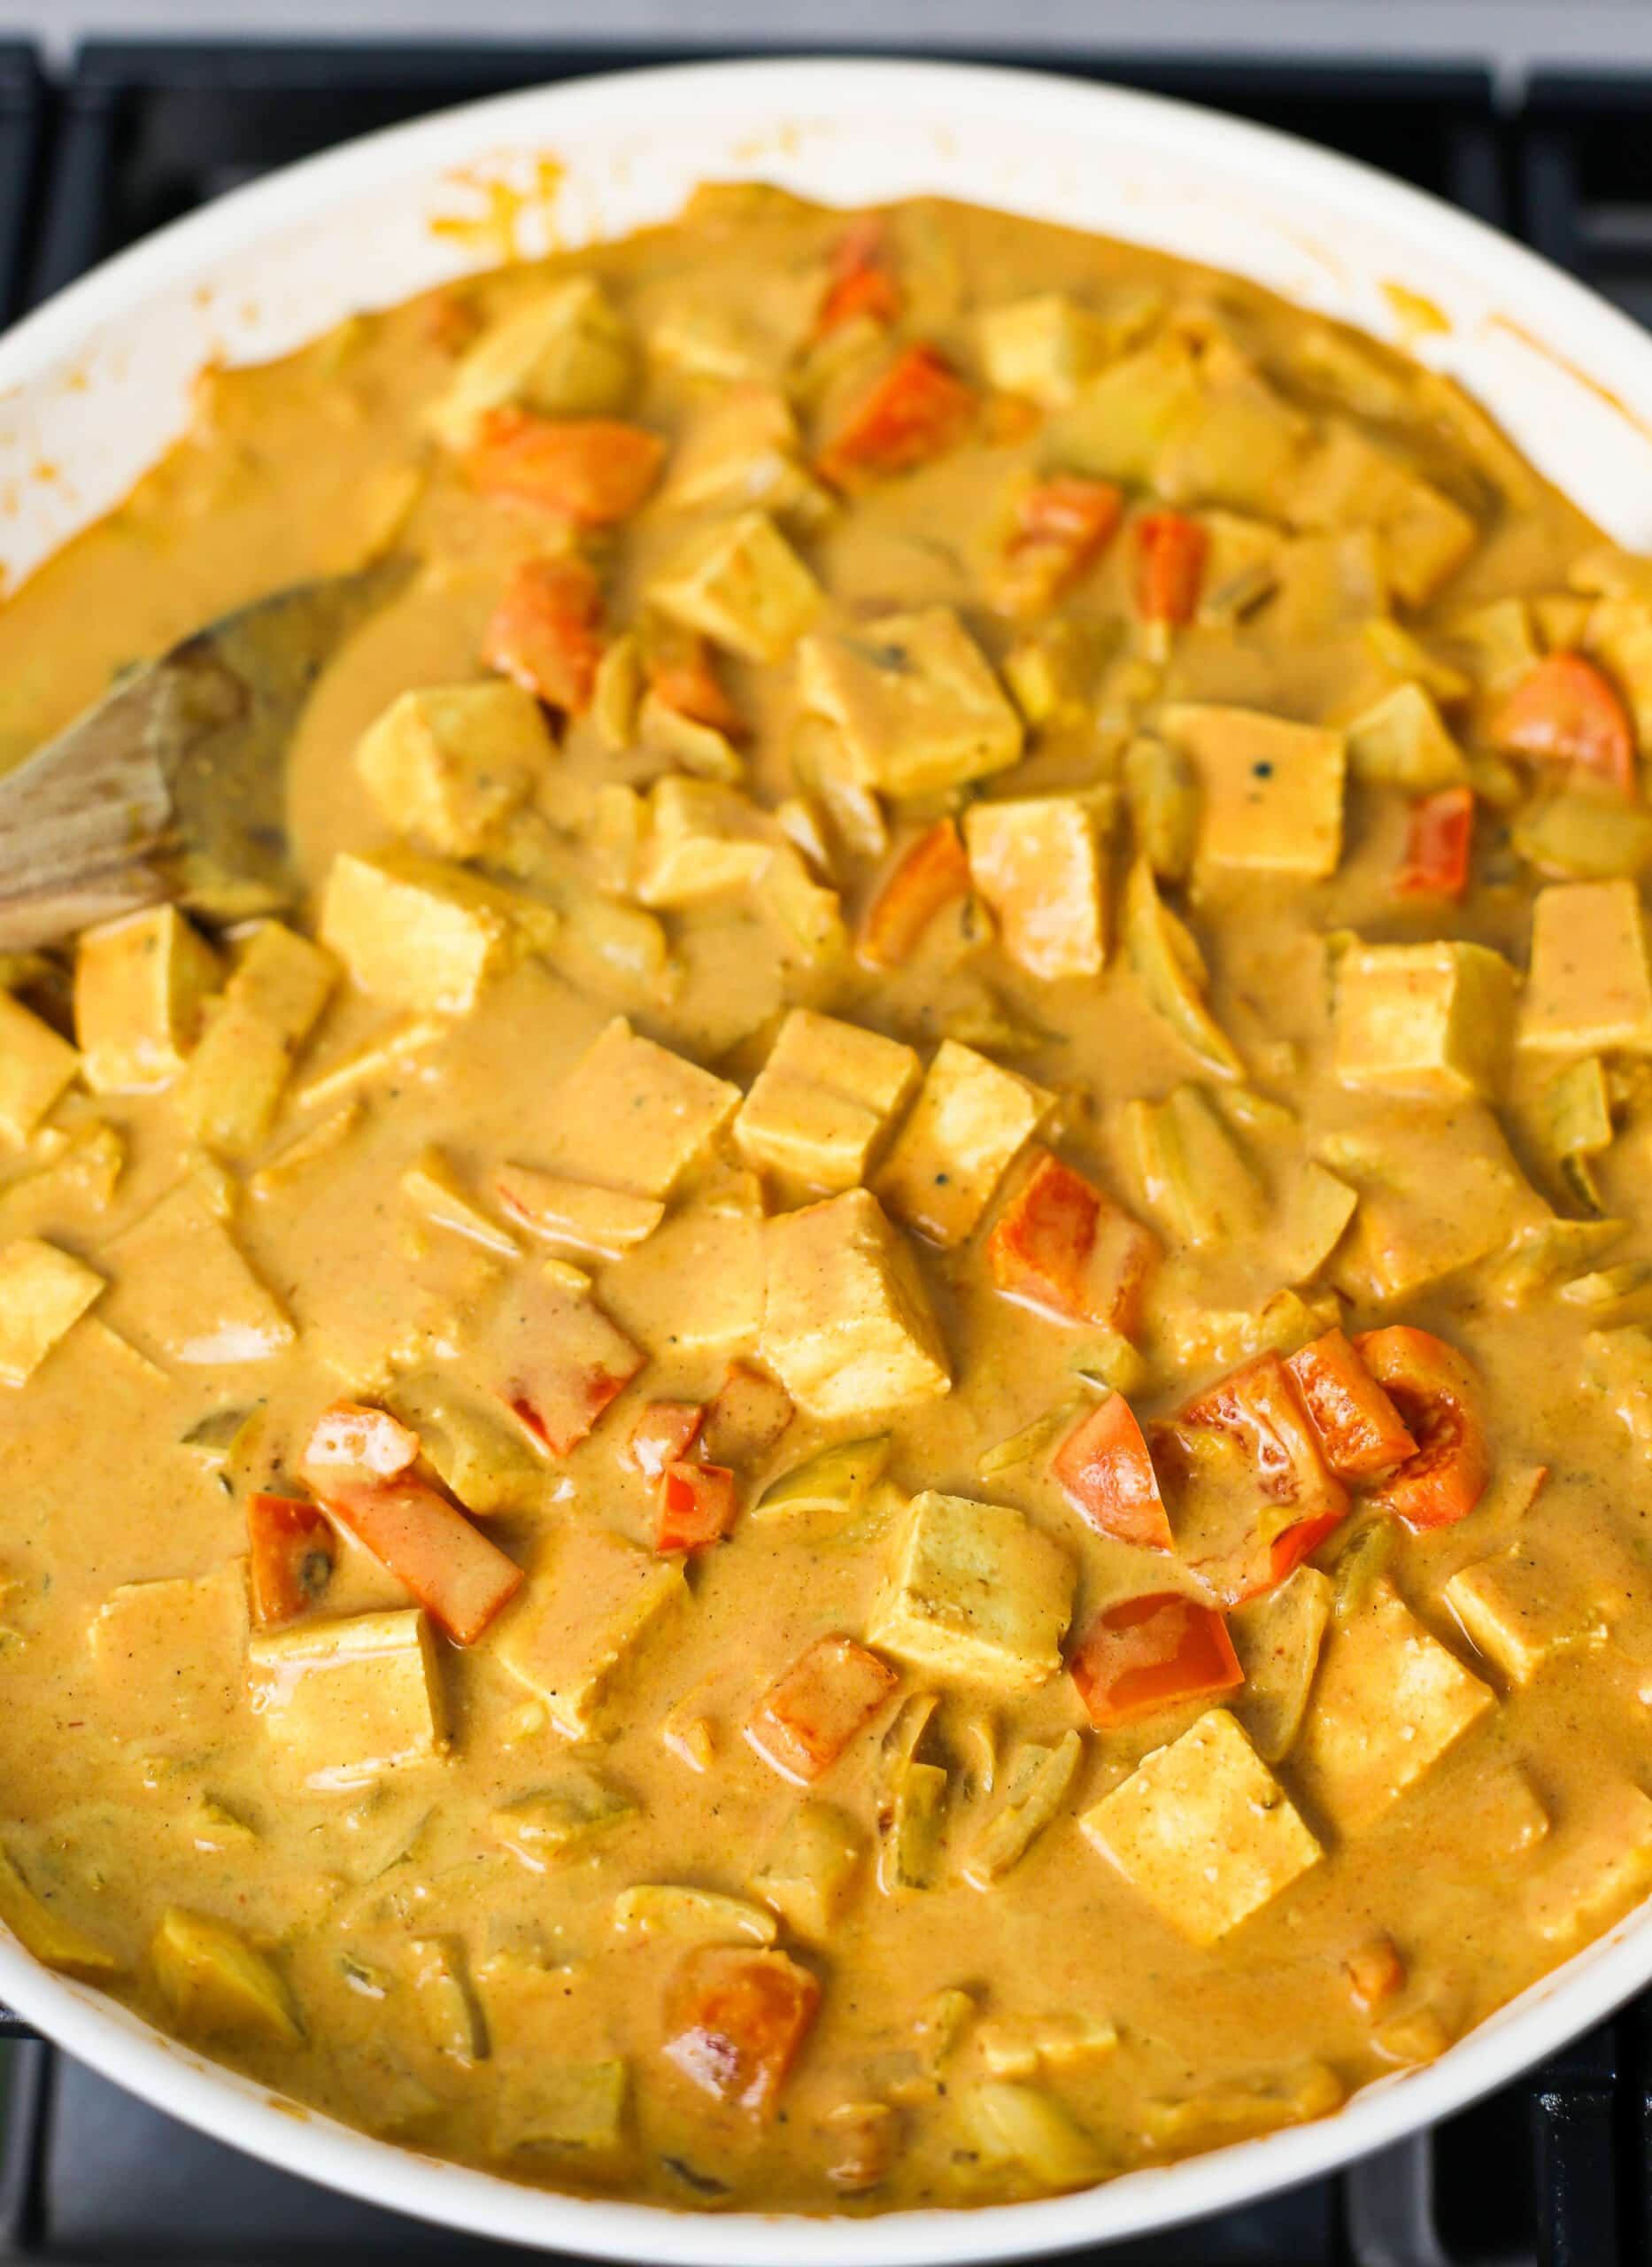 Creamy coconut curry sauce mixed with cubed tofu, and vegetables in a large fry pan.